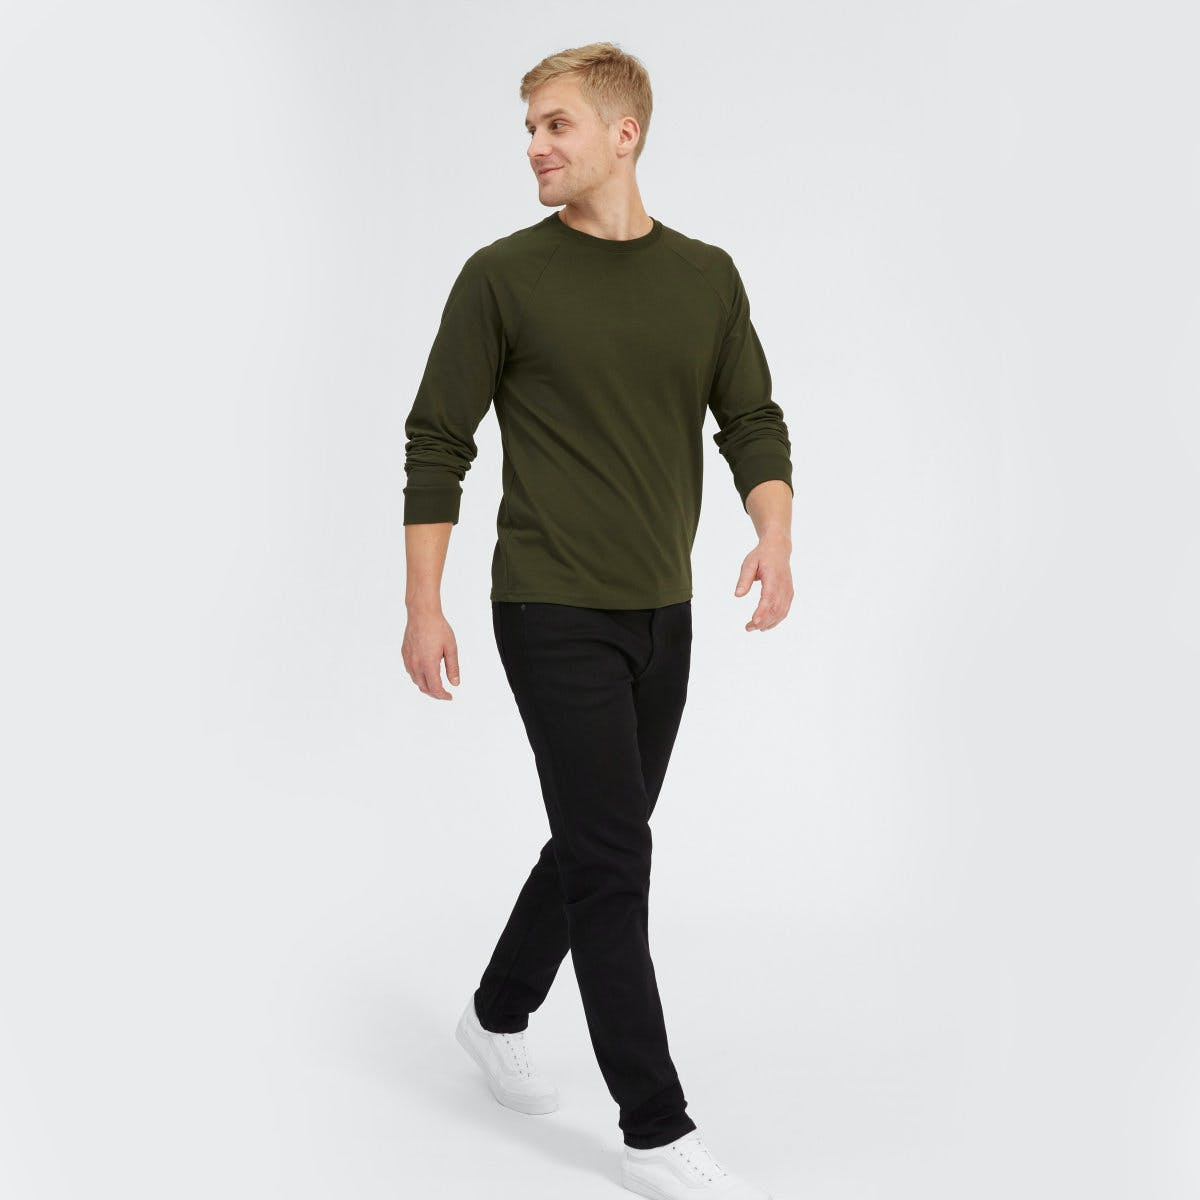 everlane, everlane jeans, everlane denim, japanese denim, athletic jeans, black jeans, tapered jeans